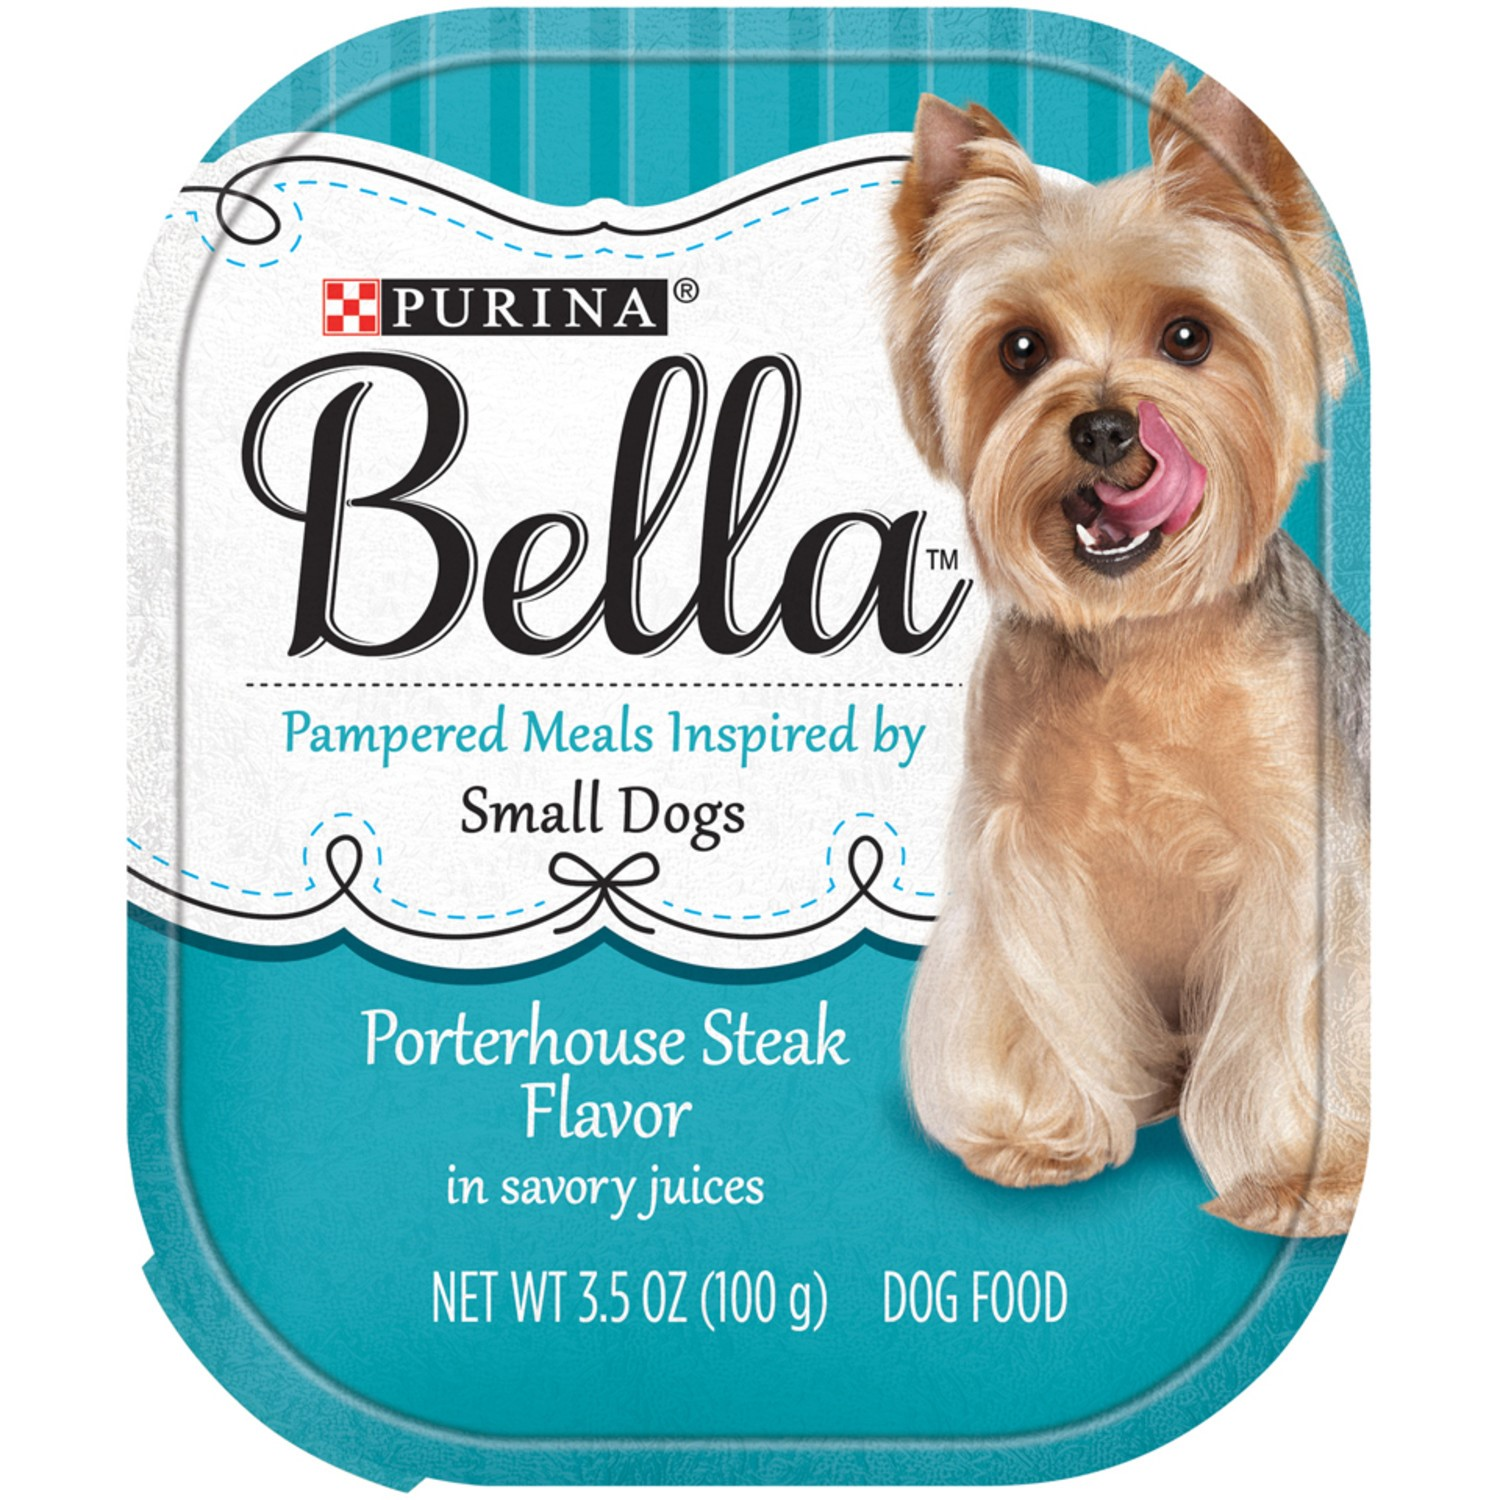 Purina Bella Porterhouse Steak Flavor in Savory Juices Small Breed Wet Dog Food Trays, 3.5-Oz, Case of 12